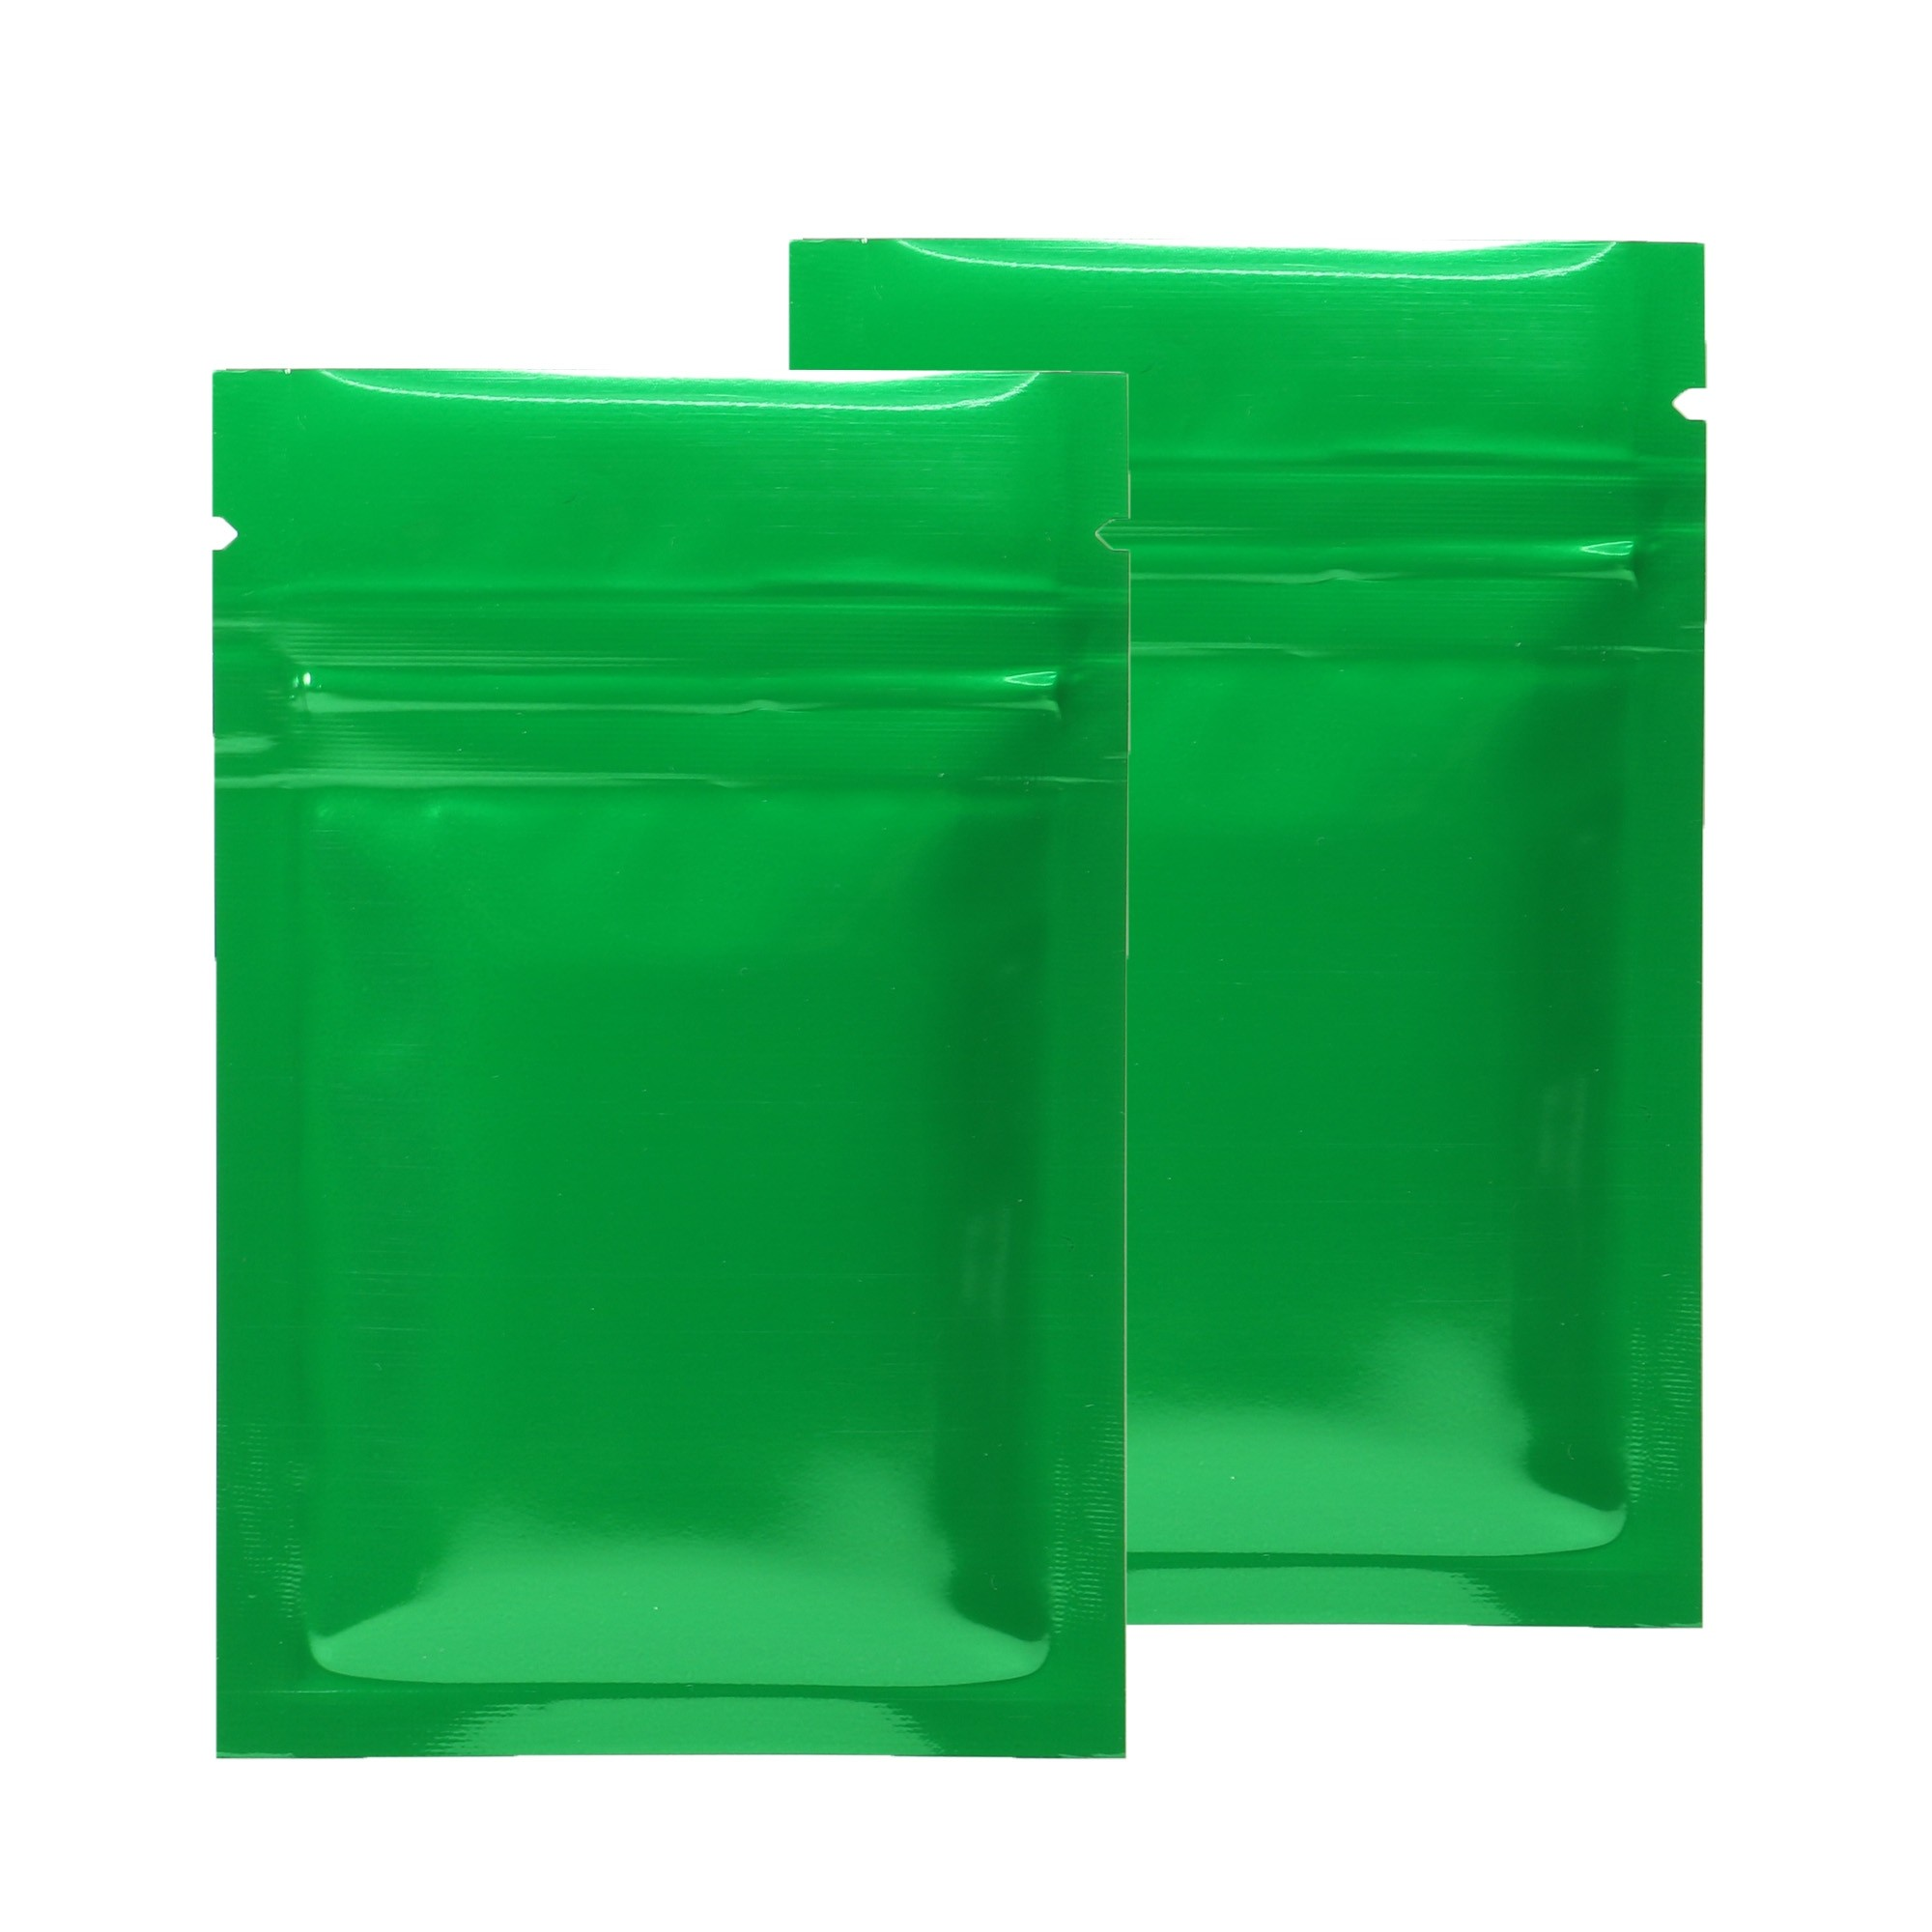 Green Shiny Metallic Mylar Ziplock Bags 6 cm x 9 cm [2.4 inches x 3.5 inches] (500 Bags/Lot)